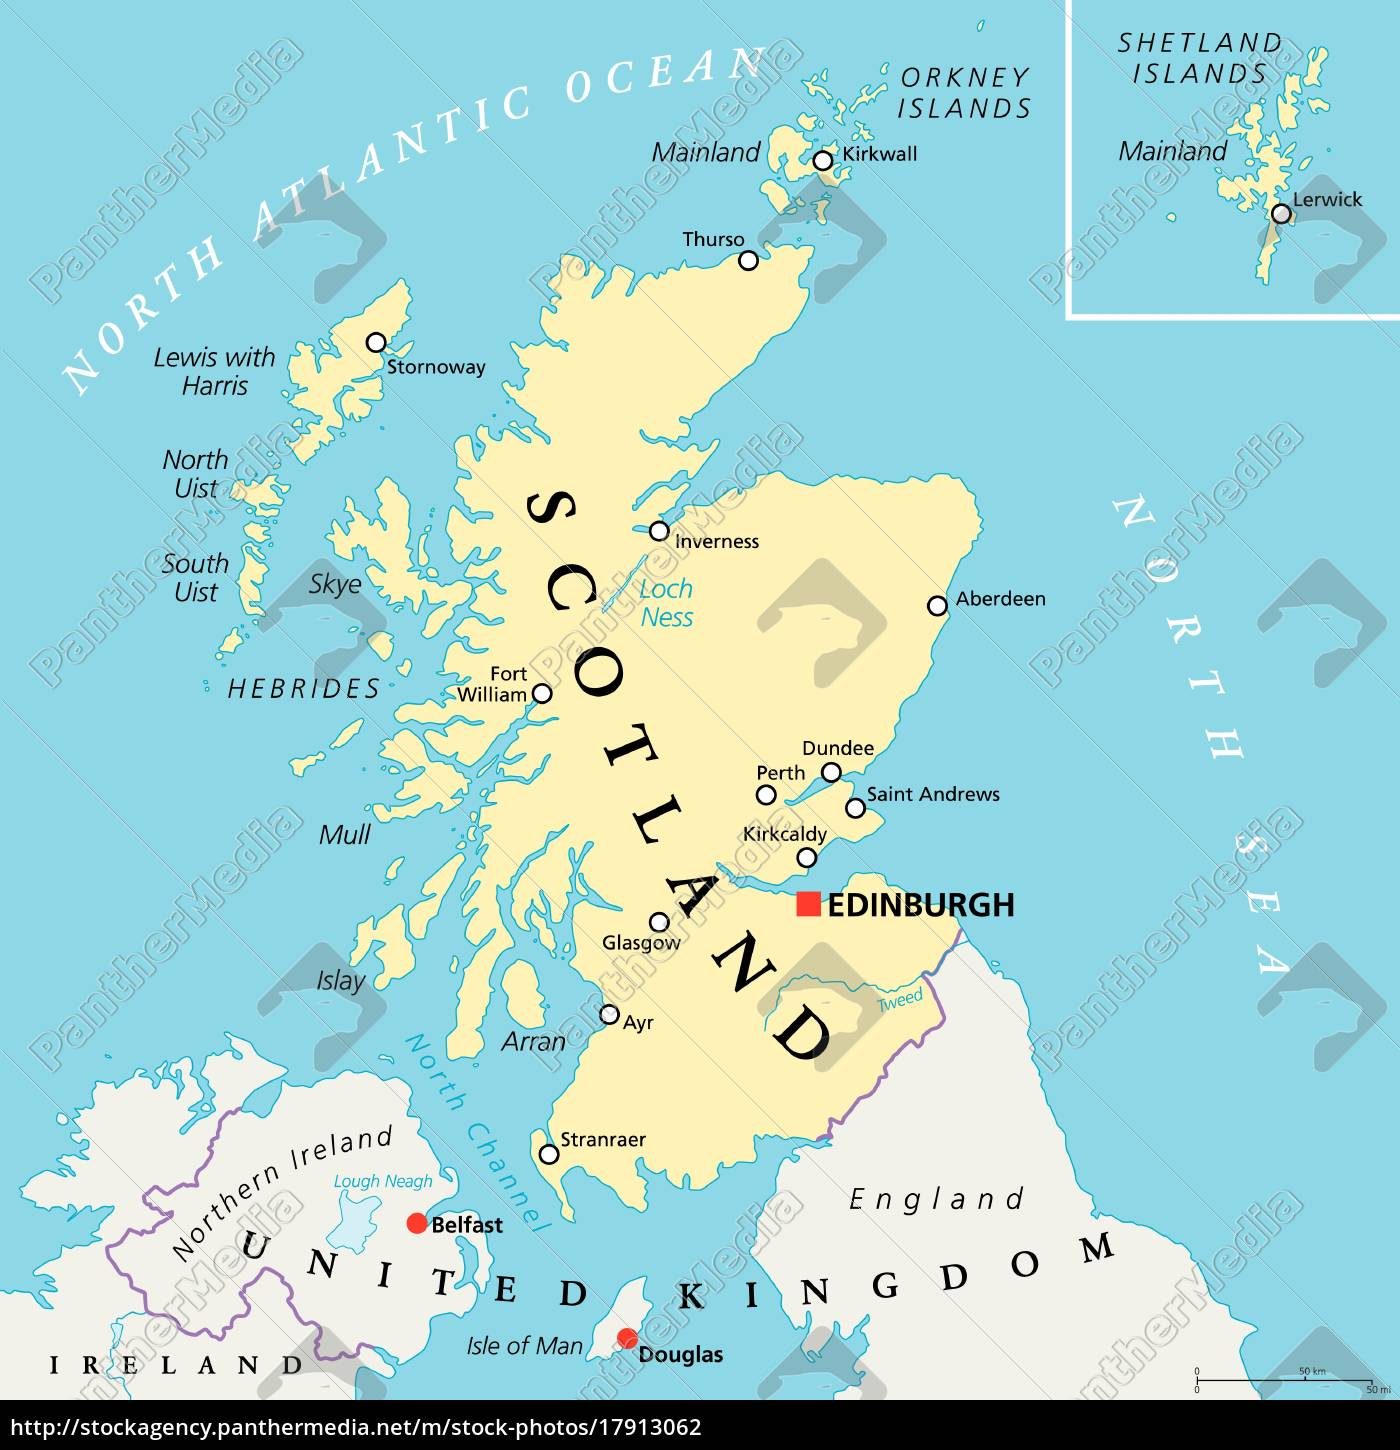 royalty free vector 17913062 - Independent Scotland Political Map on mexico map, uk map, germany map, italy map, republic of ireland, northern ireland, scottish people, portugal map, british isles map, europe map, great britain, orkney islands map, edinburgh castle, isle of wight map, flag of scotland, britain map, united kingdom, england map, loch ness, poland map, wales map, luxembourg map, basque country map, scottish highlands, greece map, france map, isle of man, ireland map, william wallace, united kingdom map, australia map,